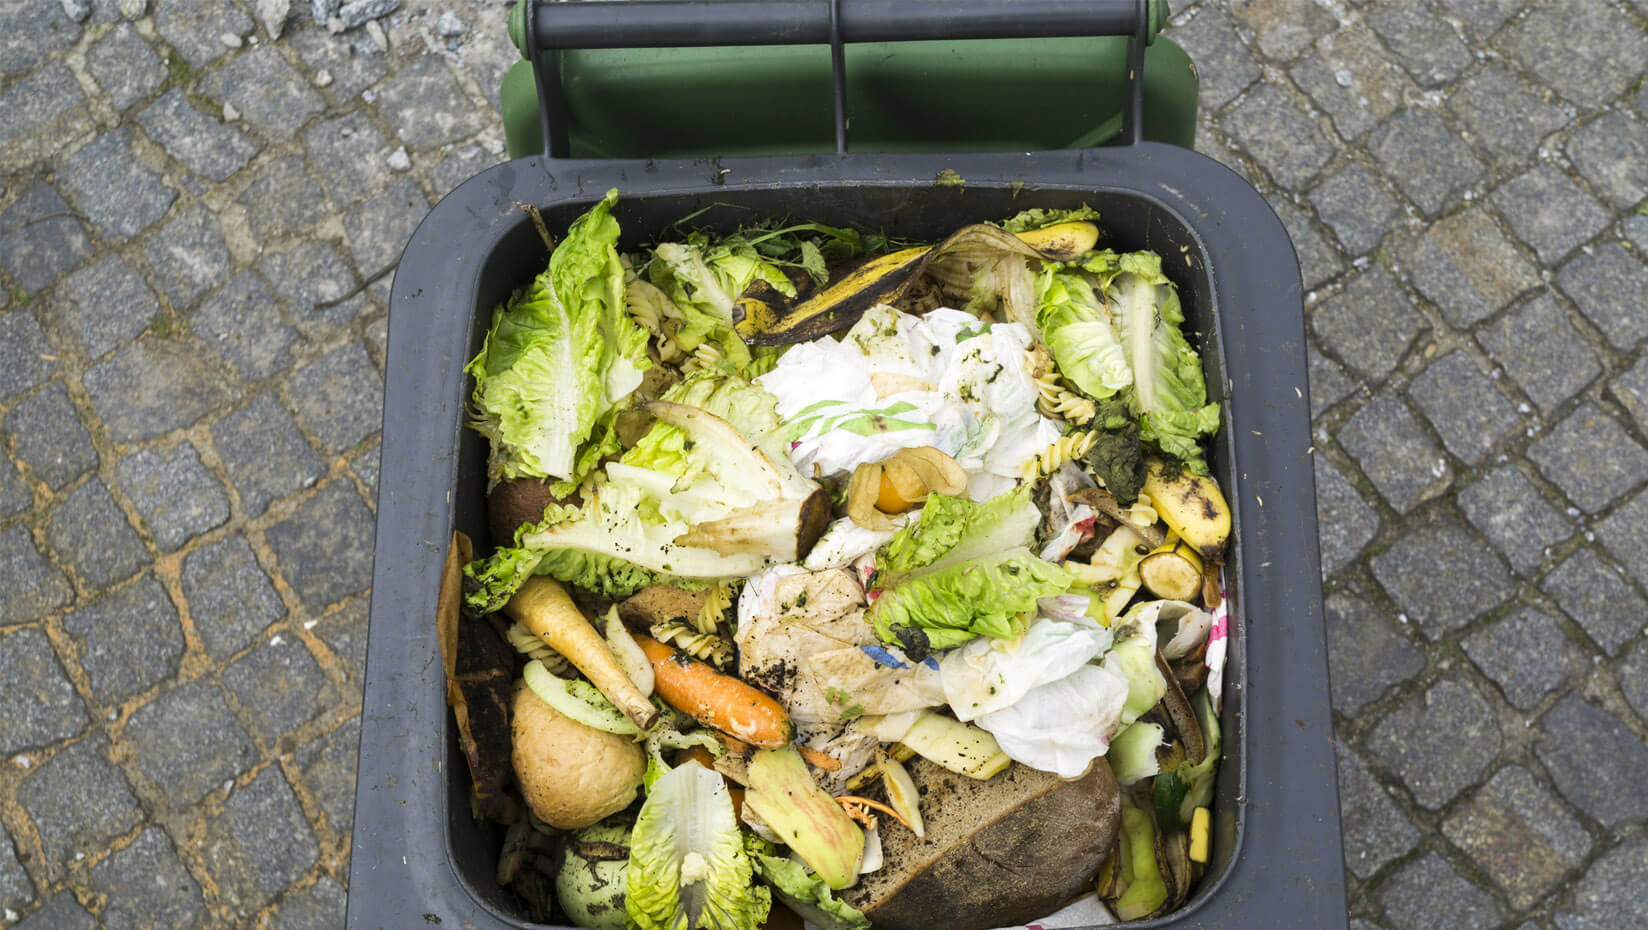 Food waste in a garbage can